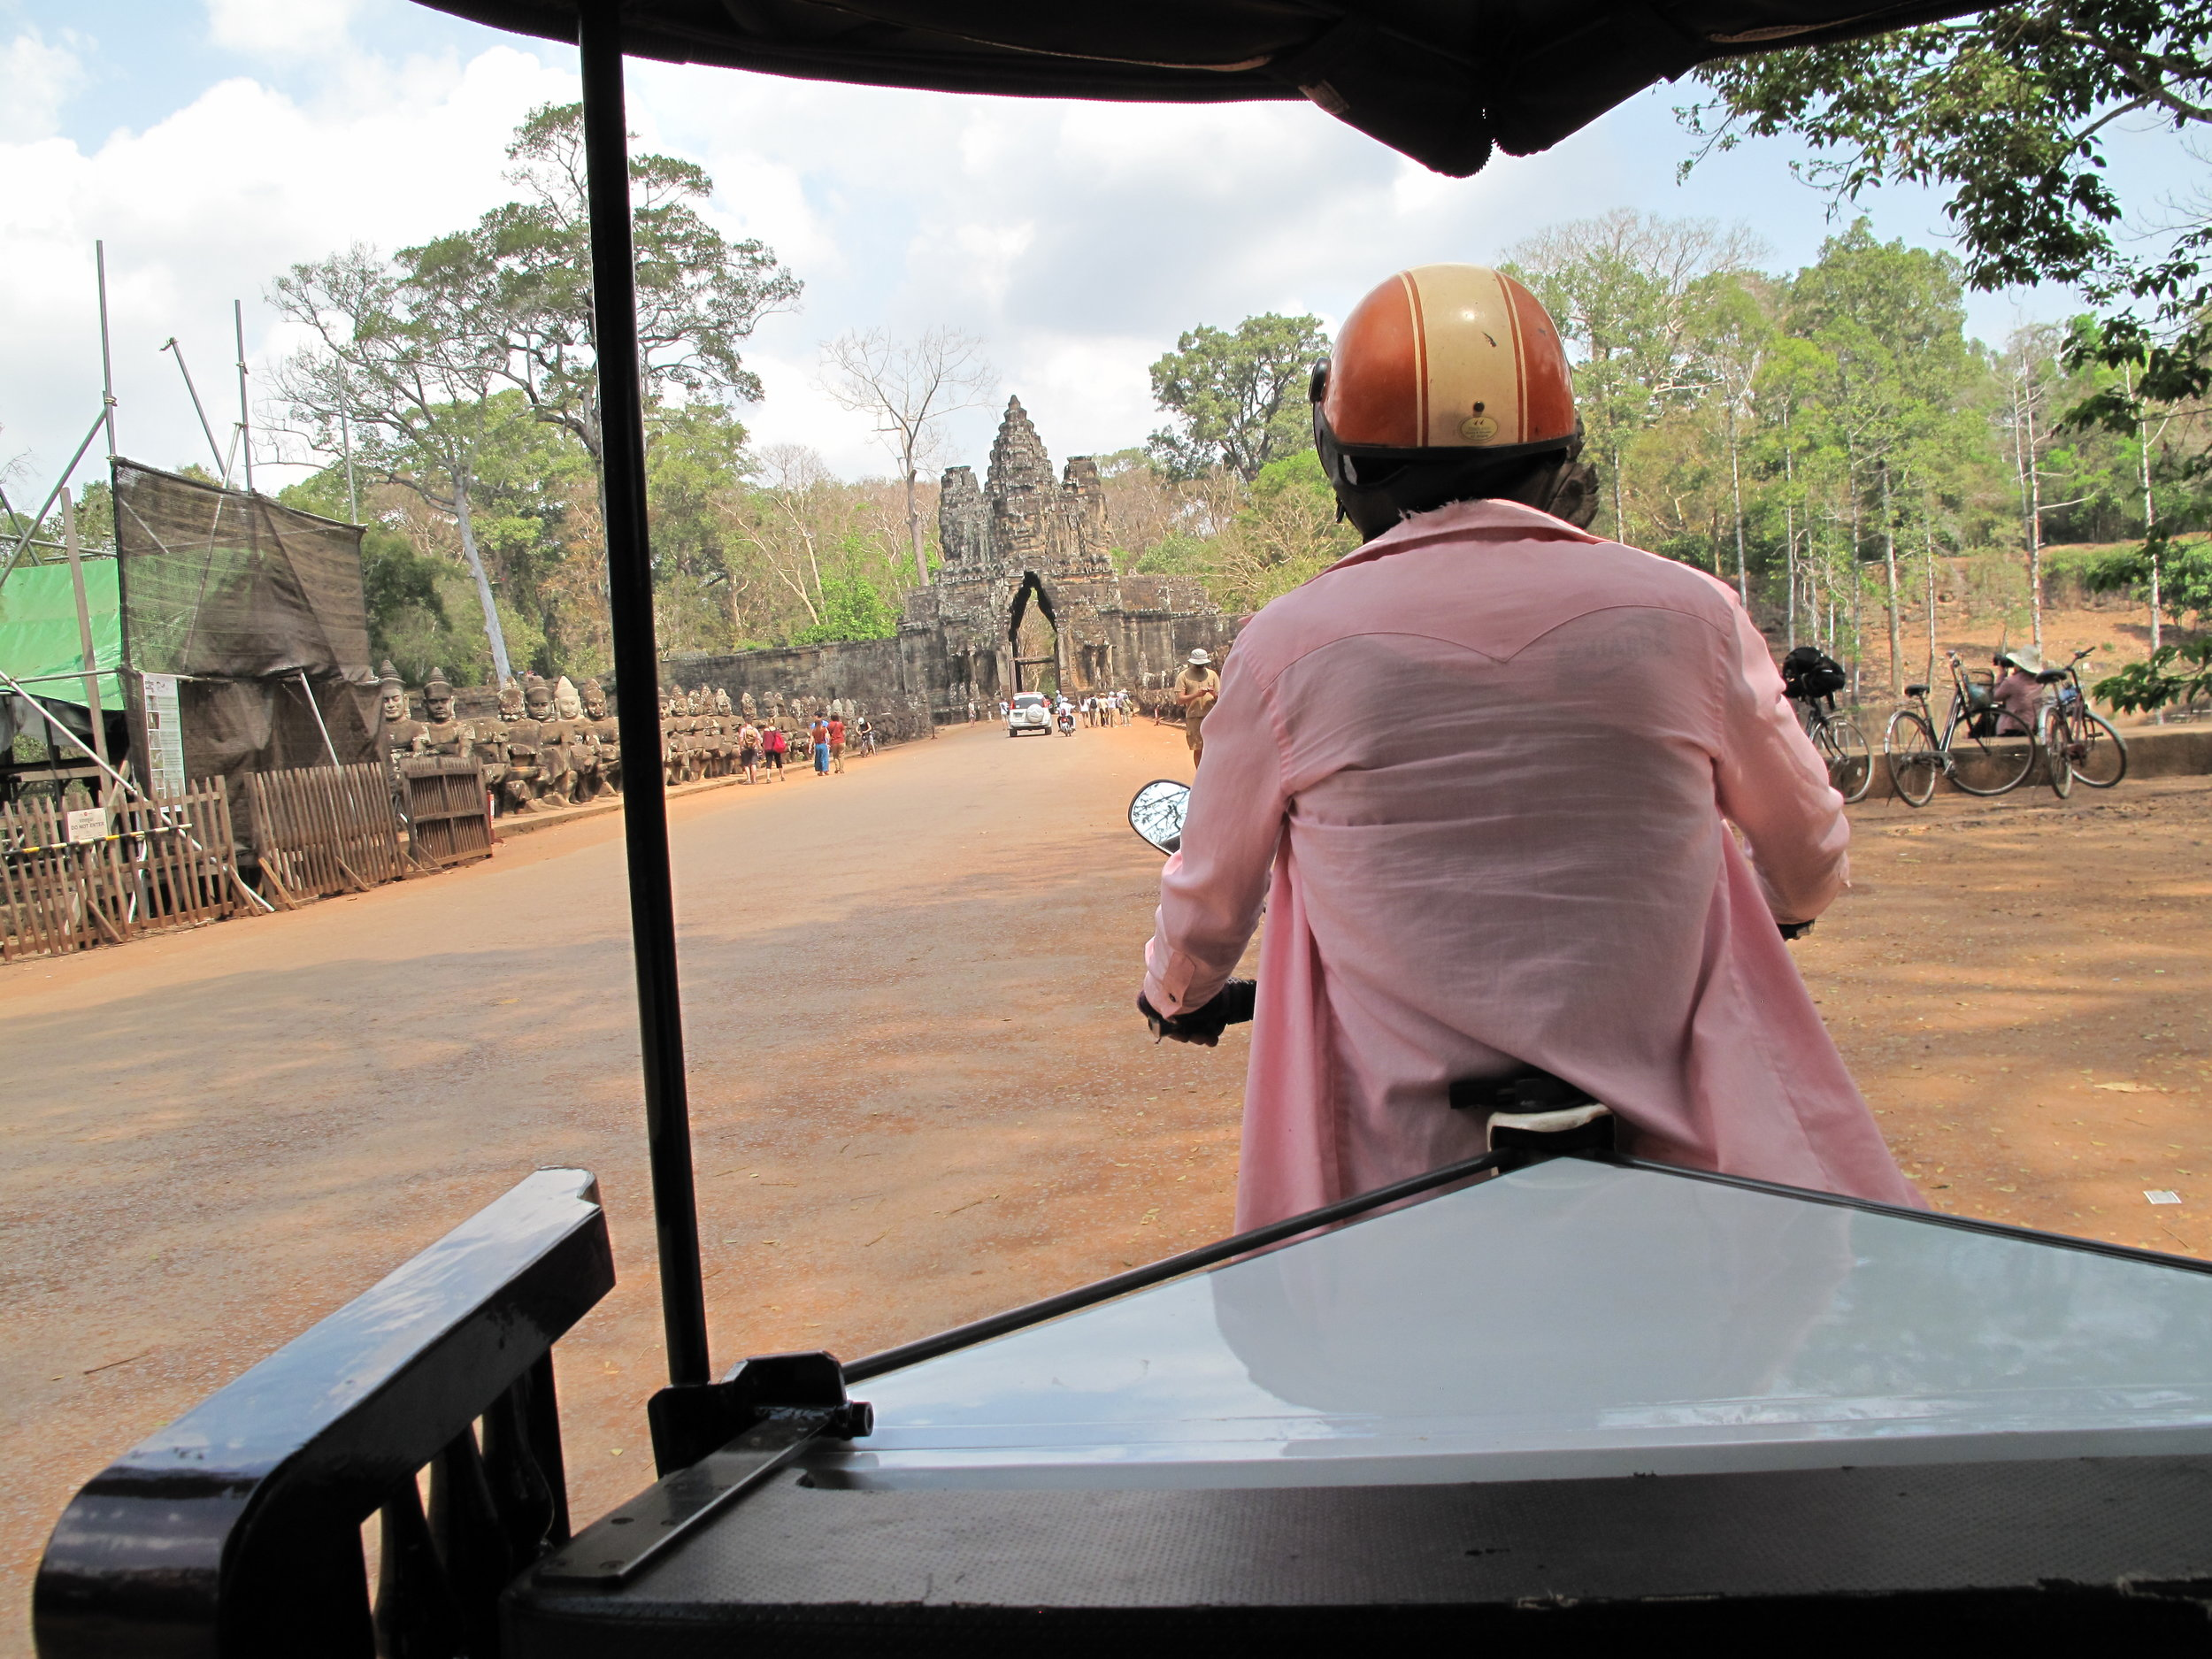 The view from the tuk-tuk, Temples of Angkor, Siem Reap